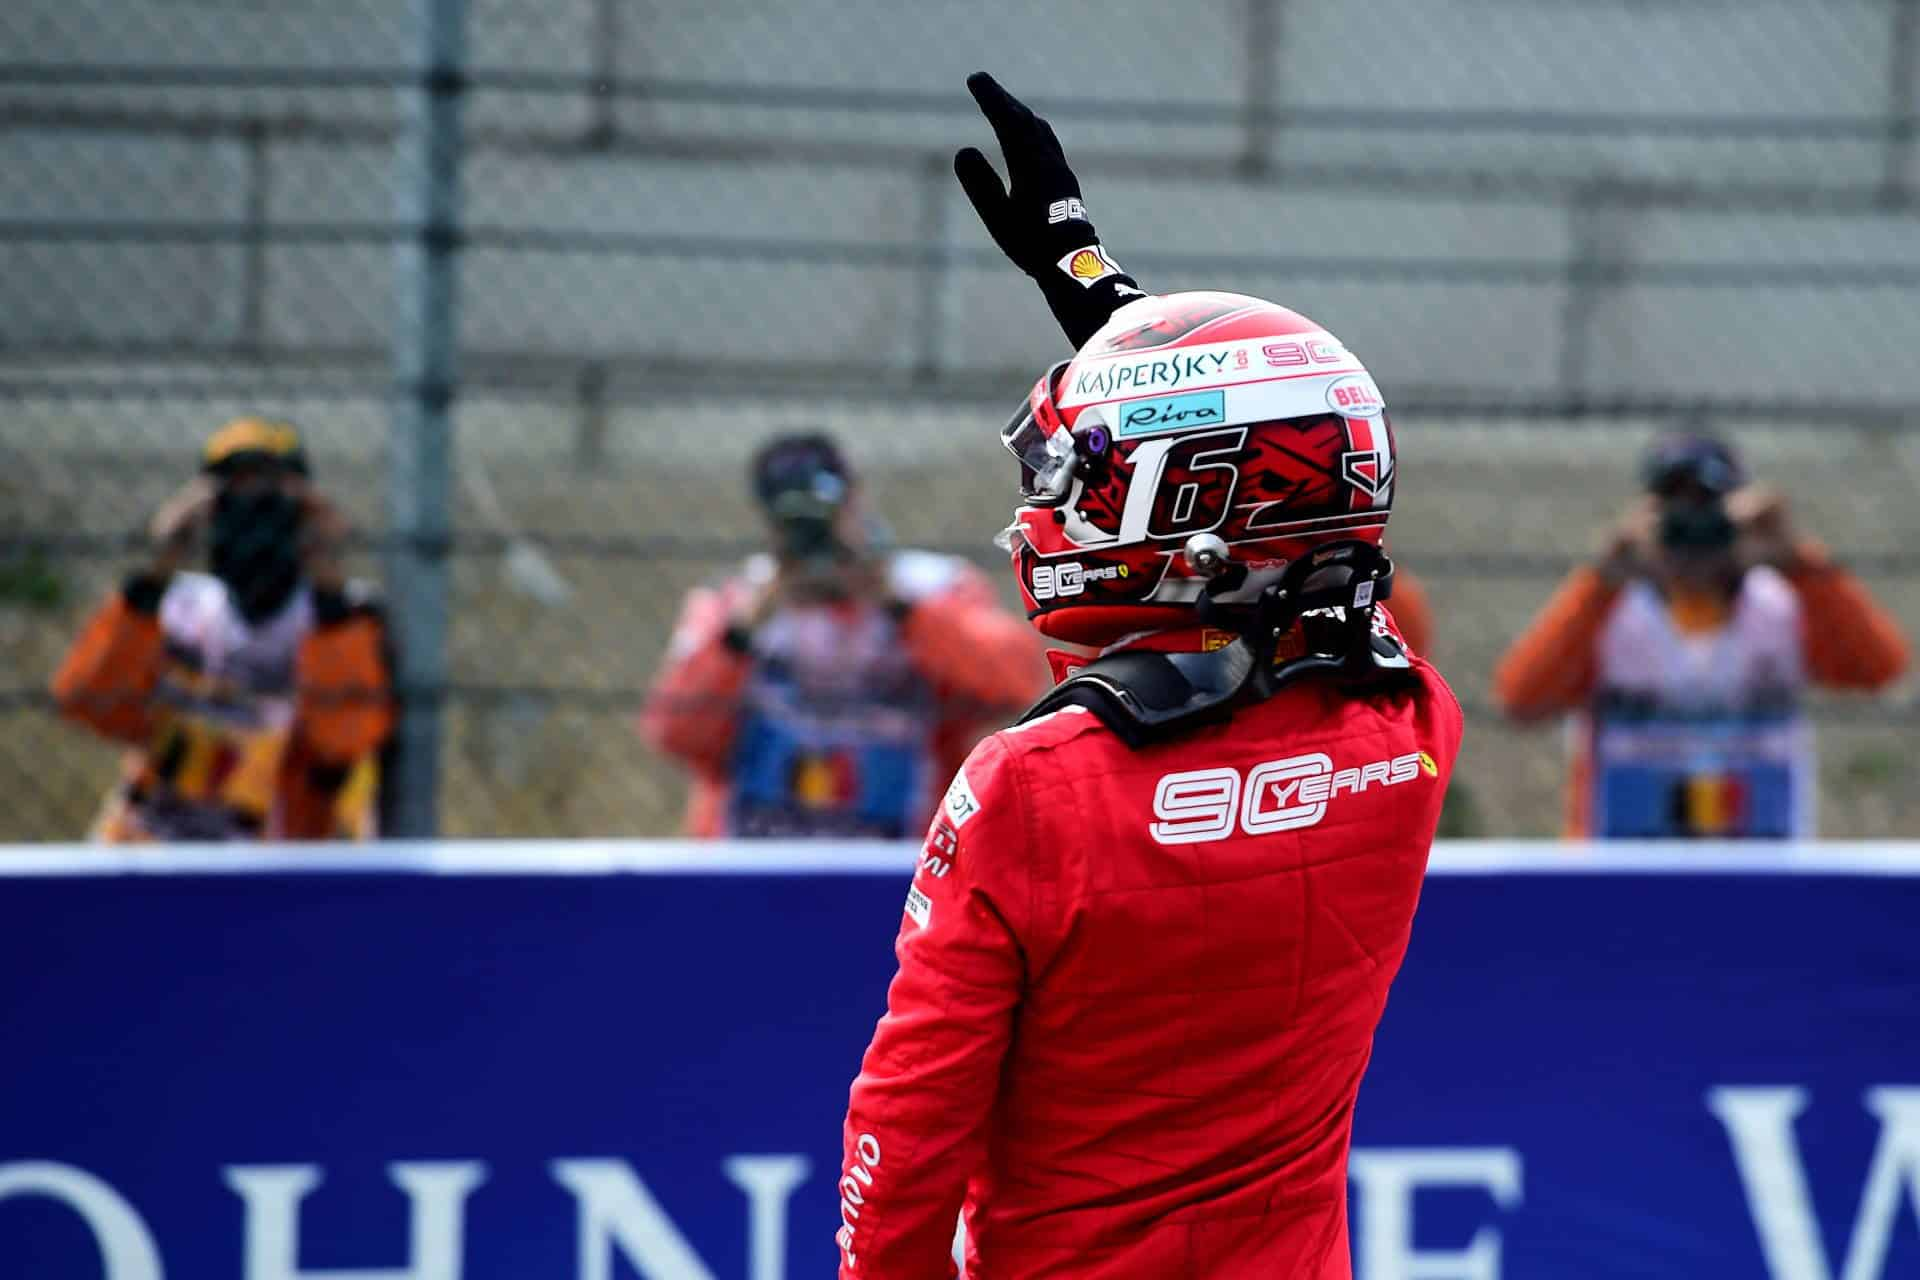 Charles Leclerc Ferrari Belgian GP F1 2019 after qualifying Photo Ferrari